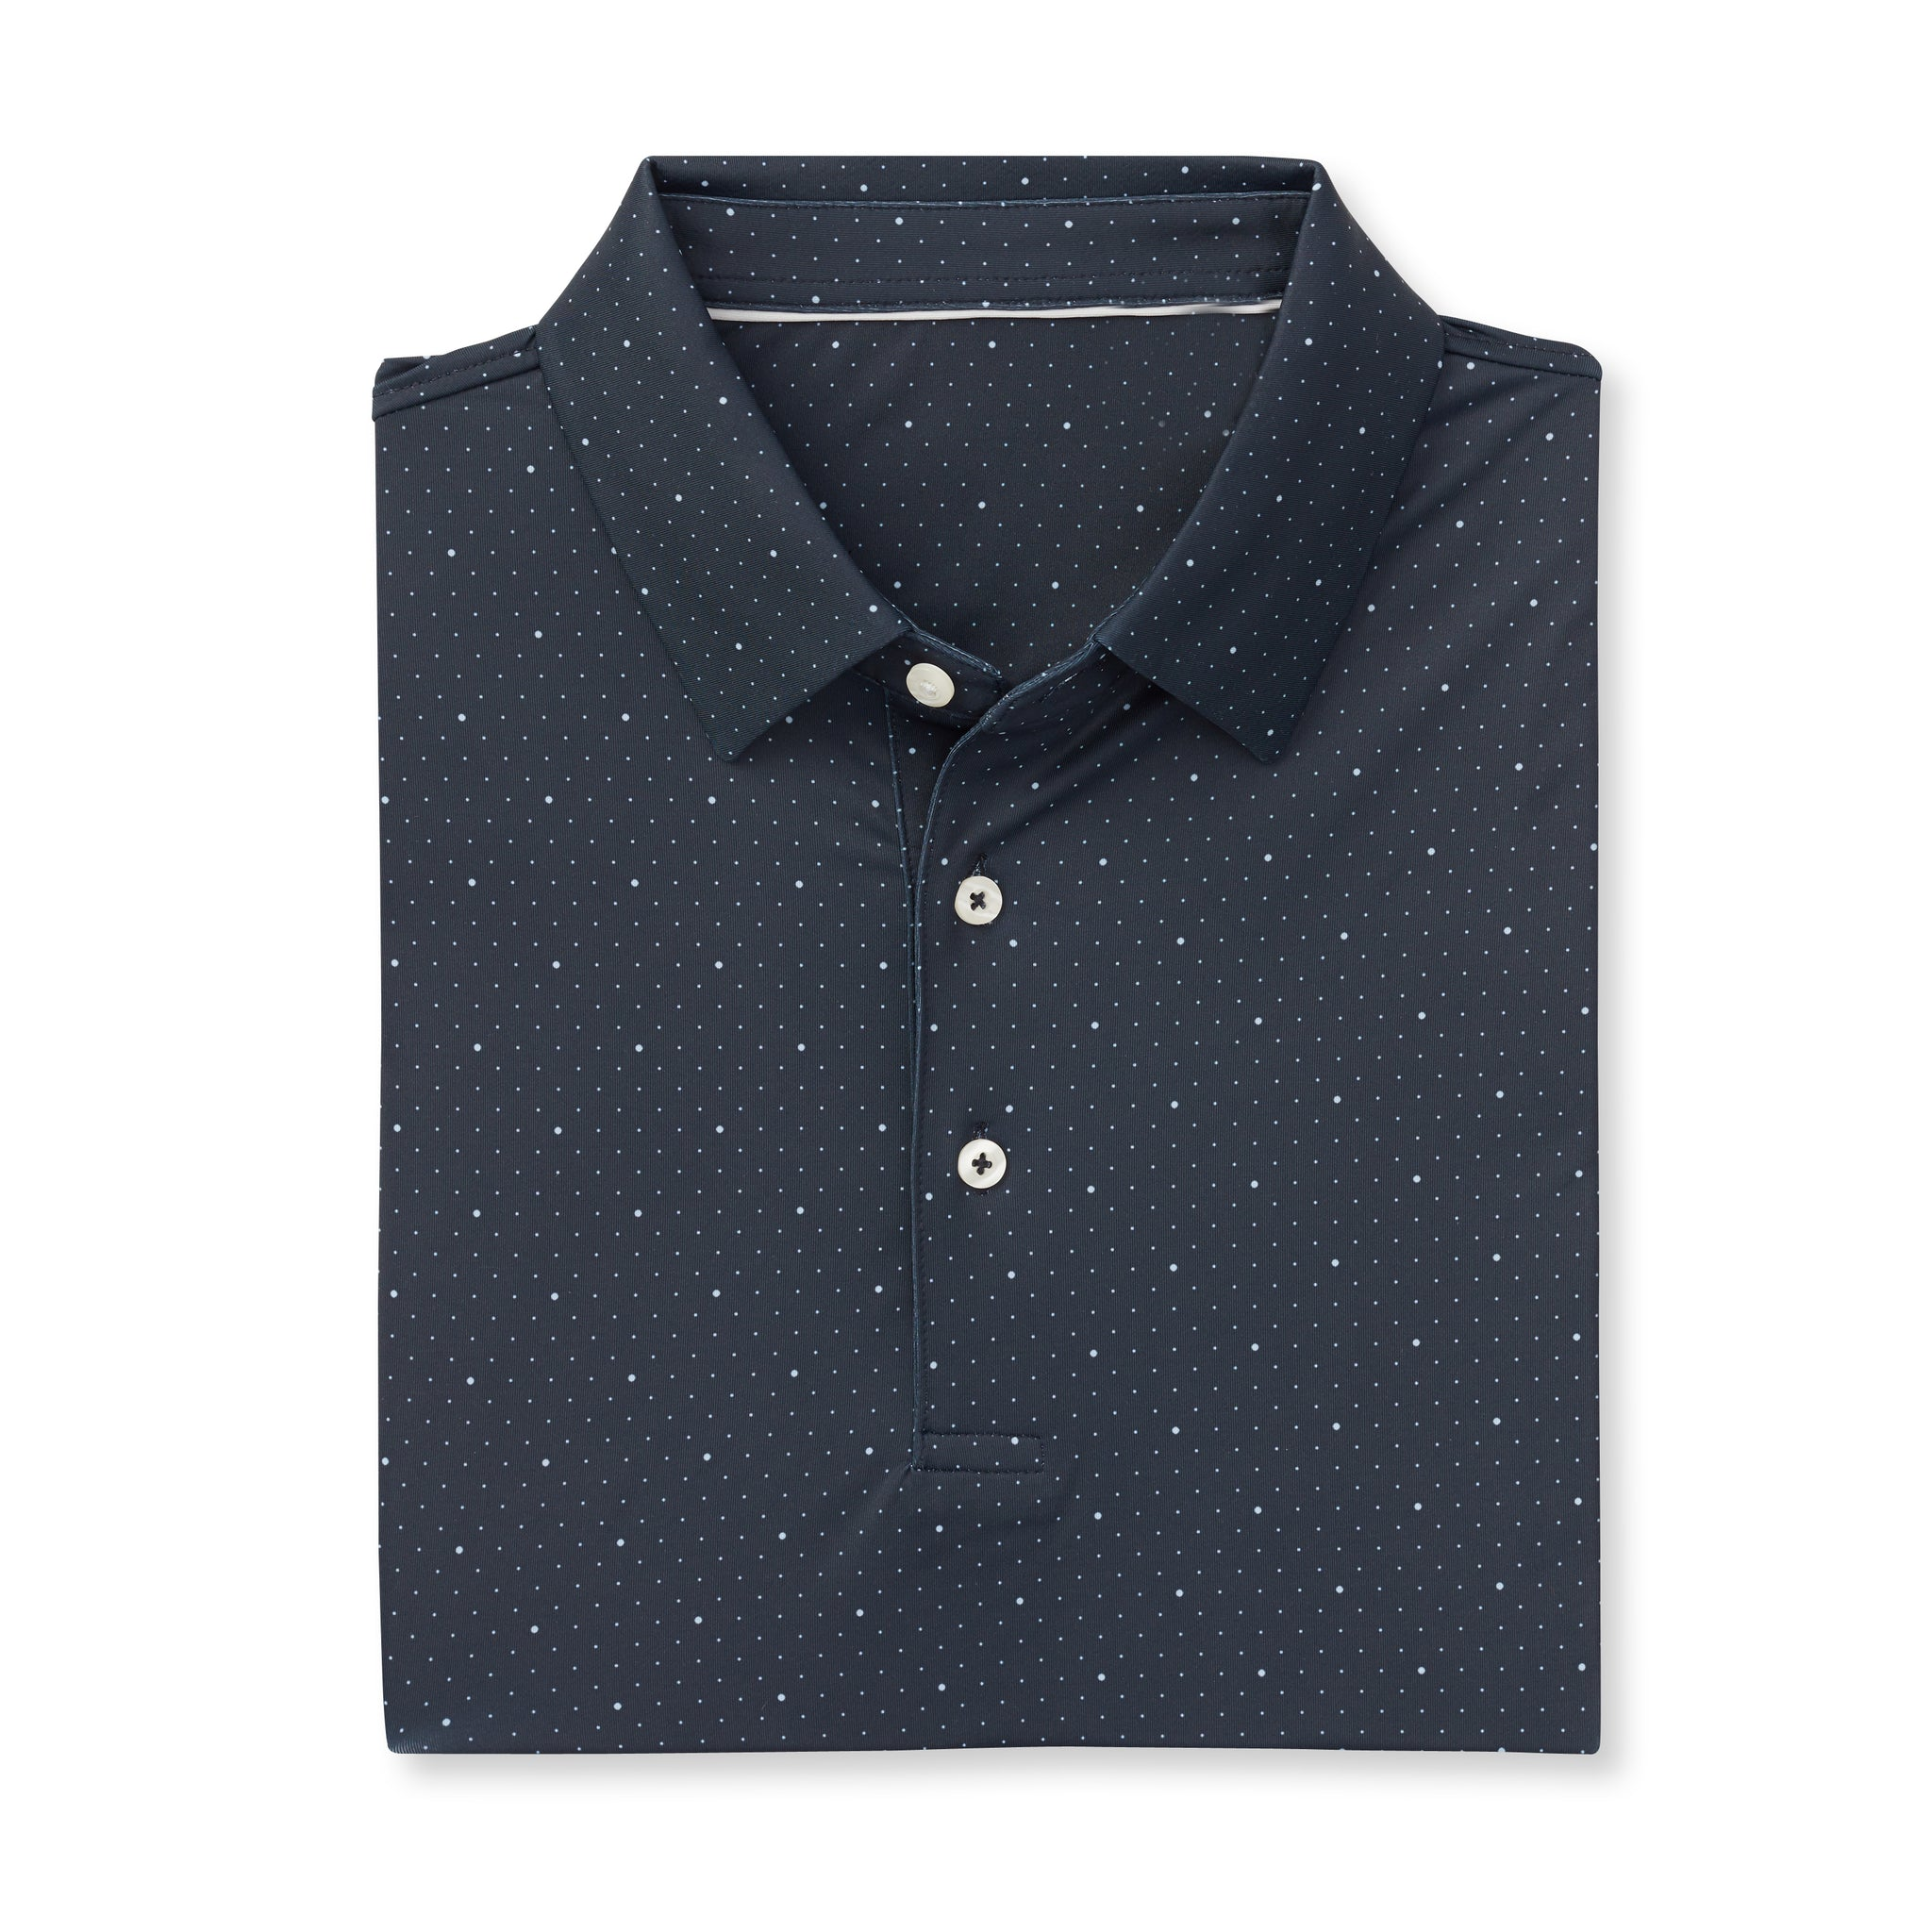 ECOTEC Short Sleeve Dual Dot Polo - Black/Cloud IS76803